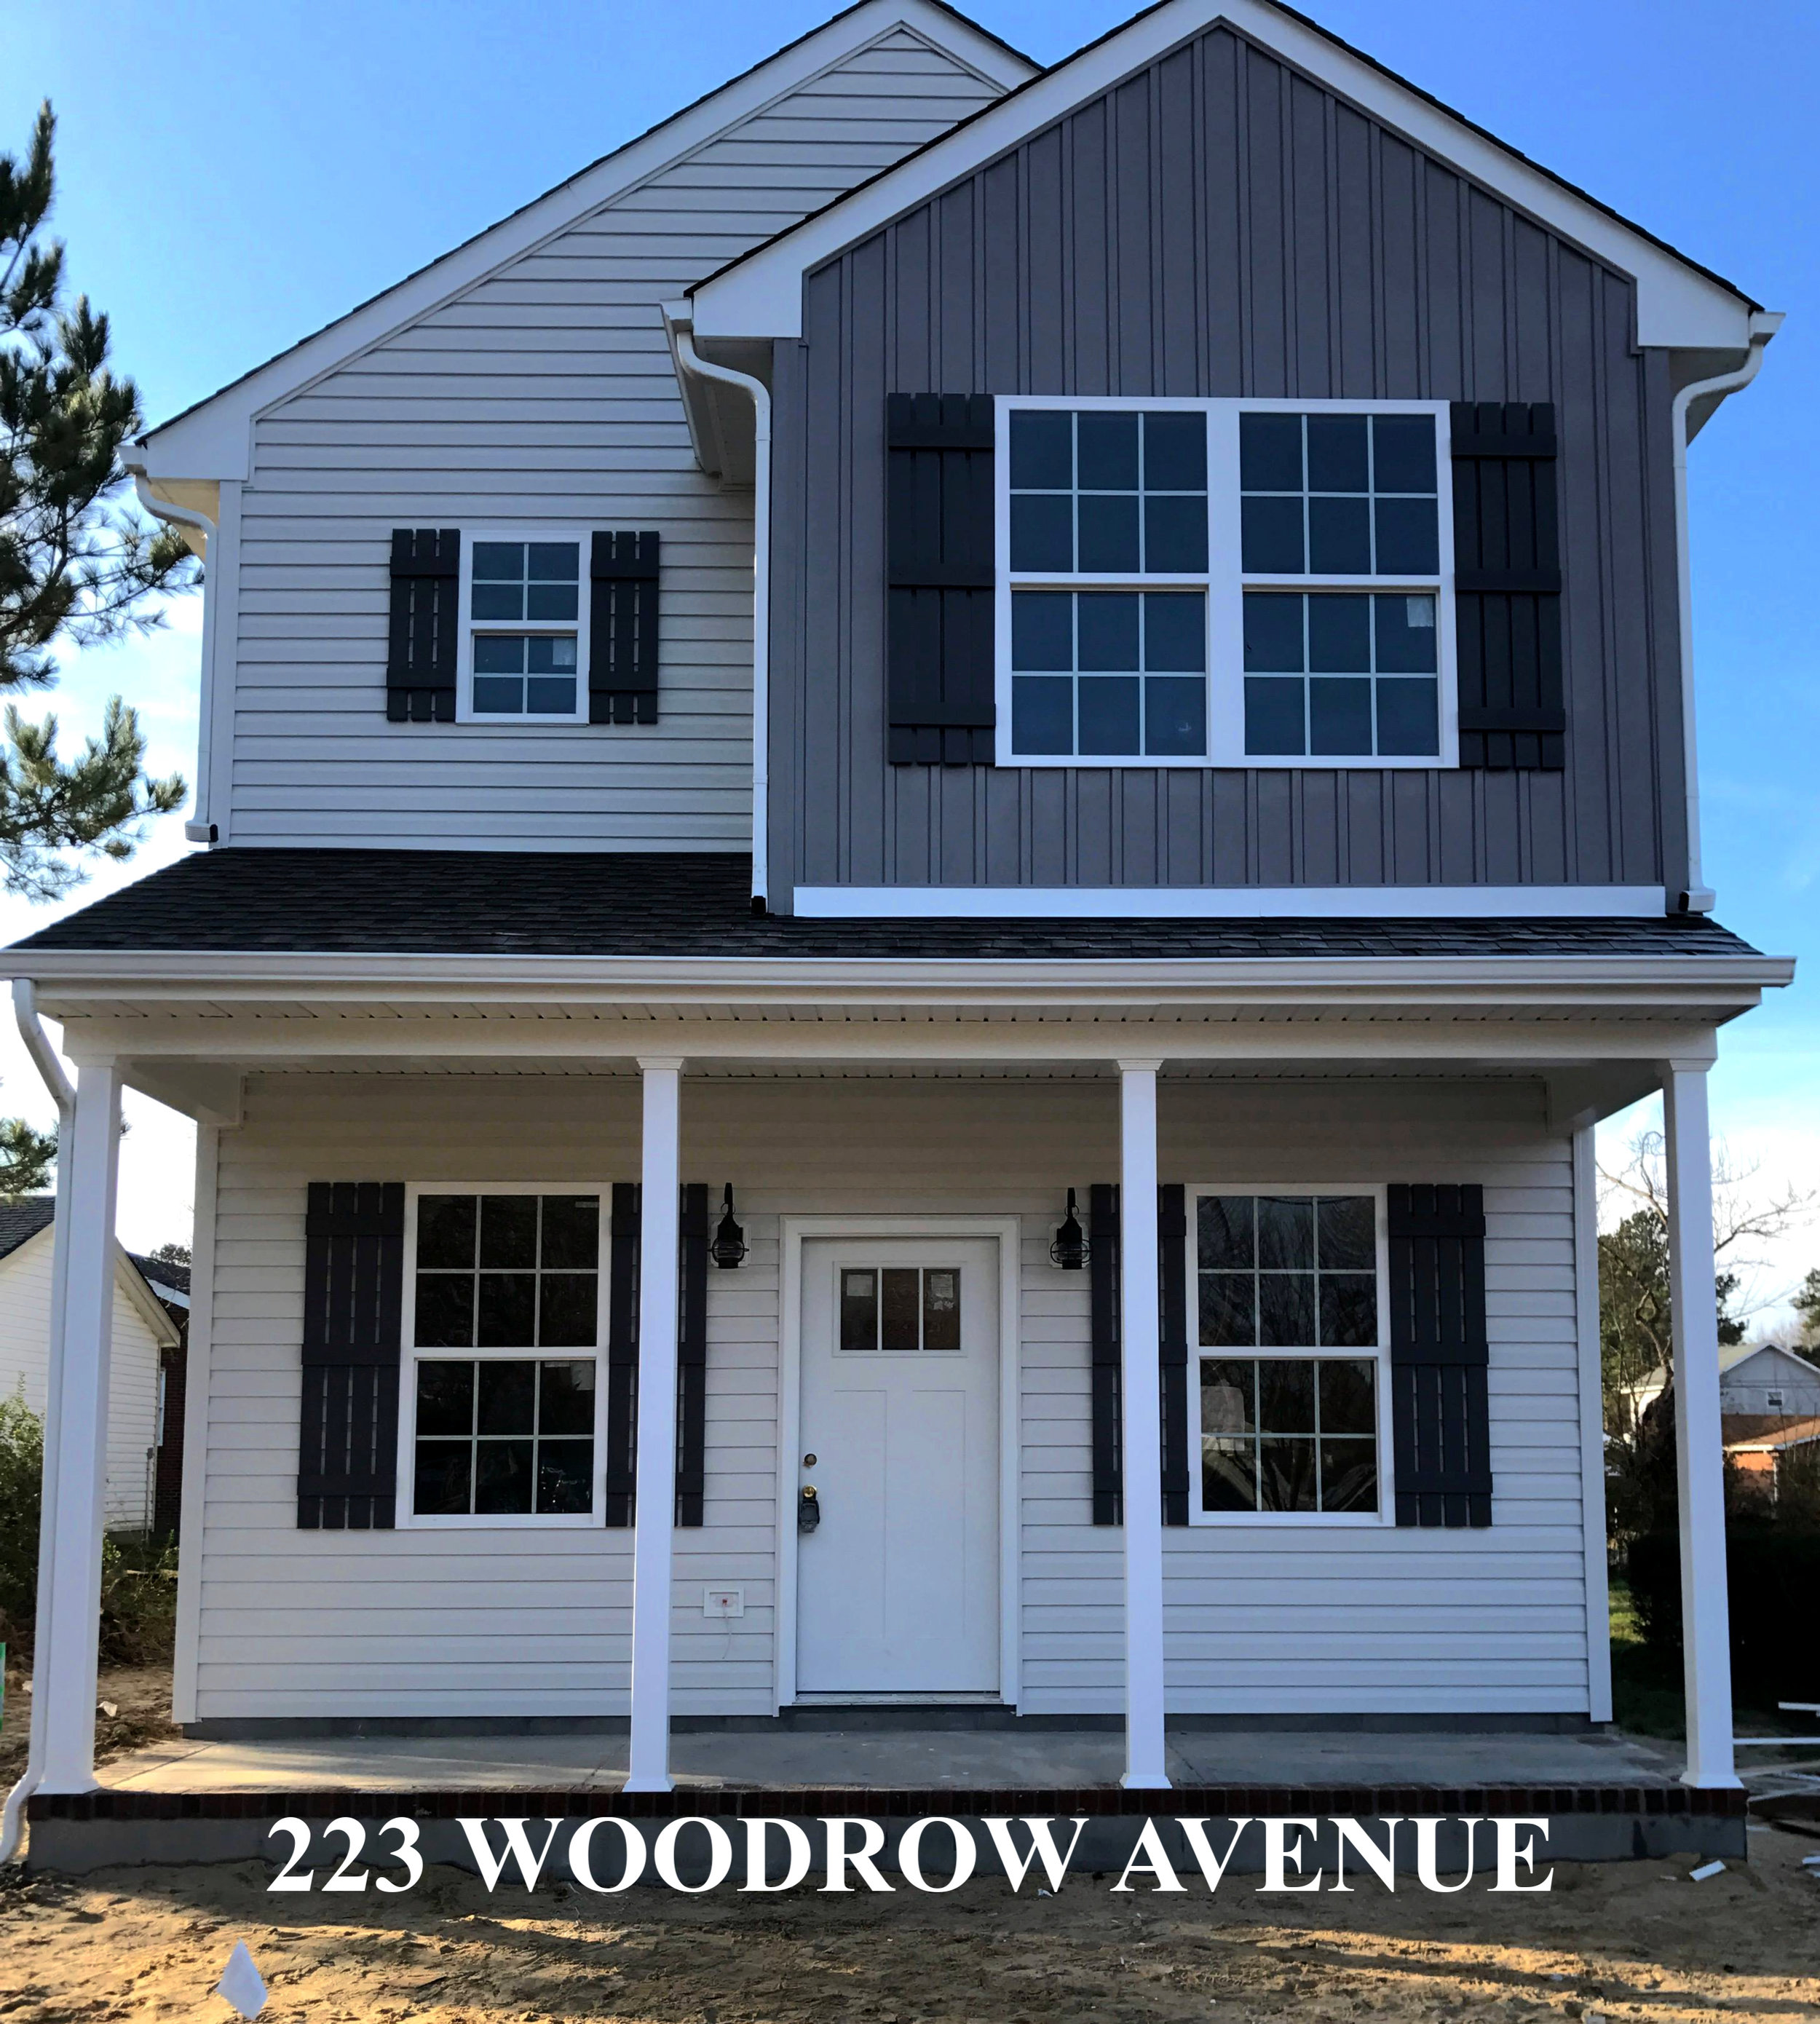 223 WOODROW AVENUE  - NEW CONSTRUCTION IN SUFFOLK